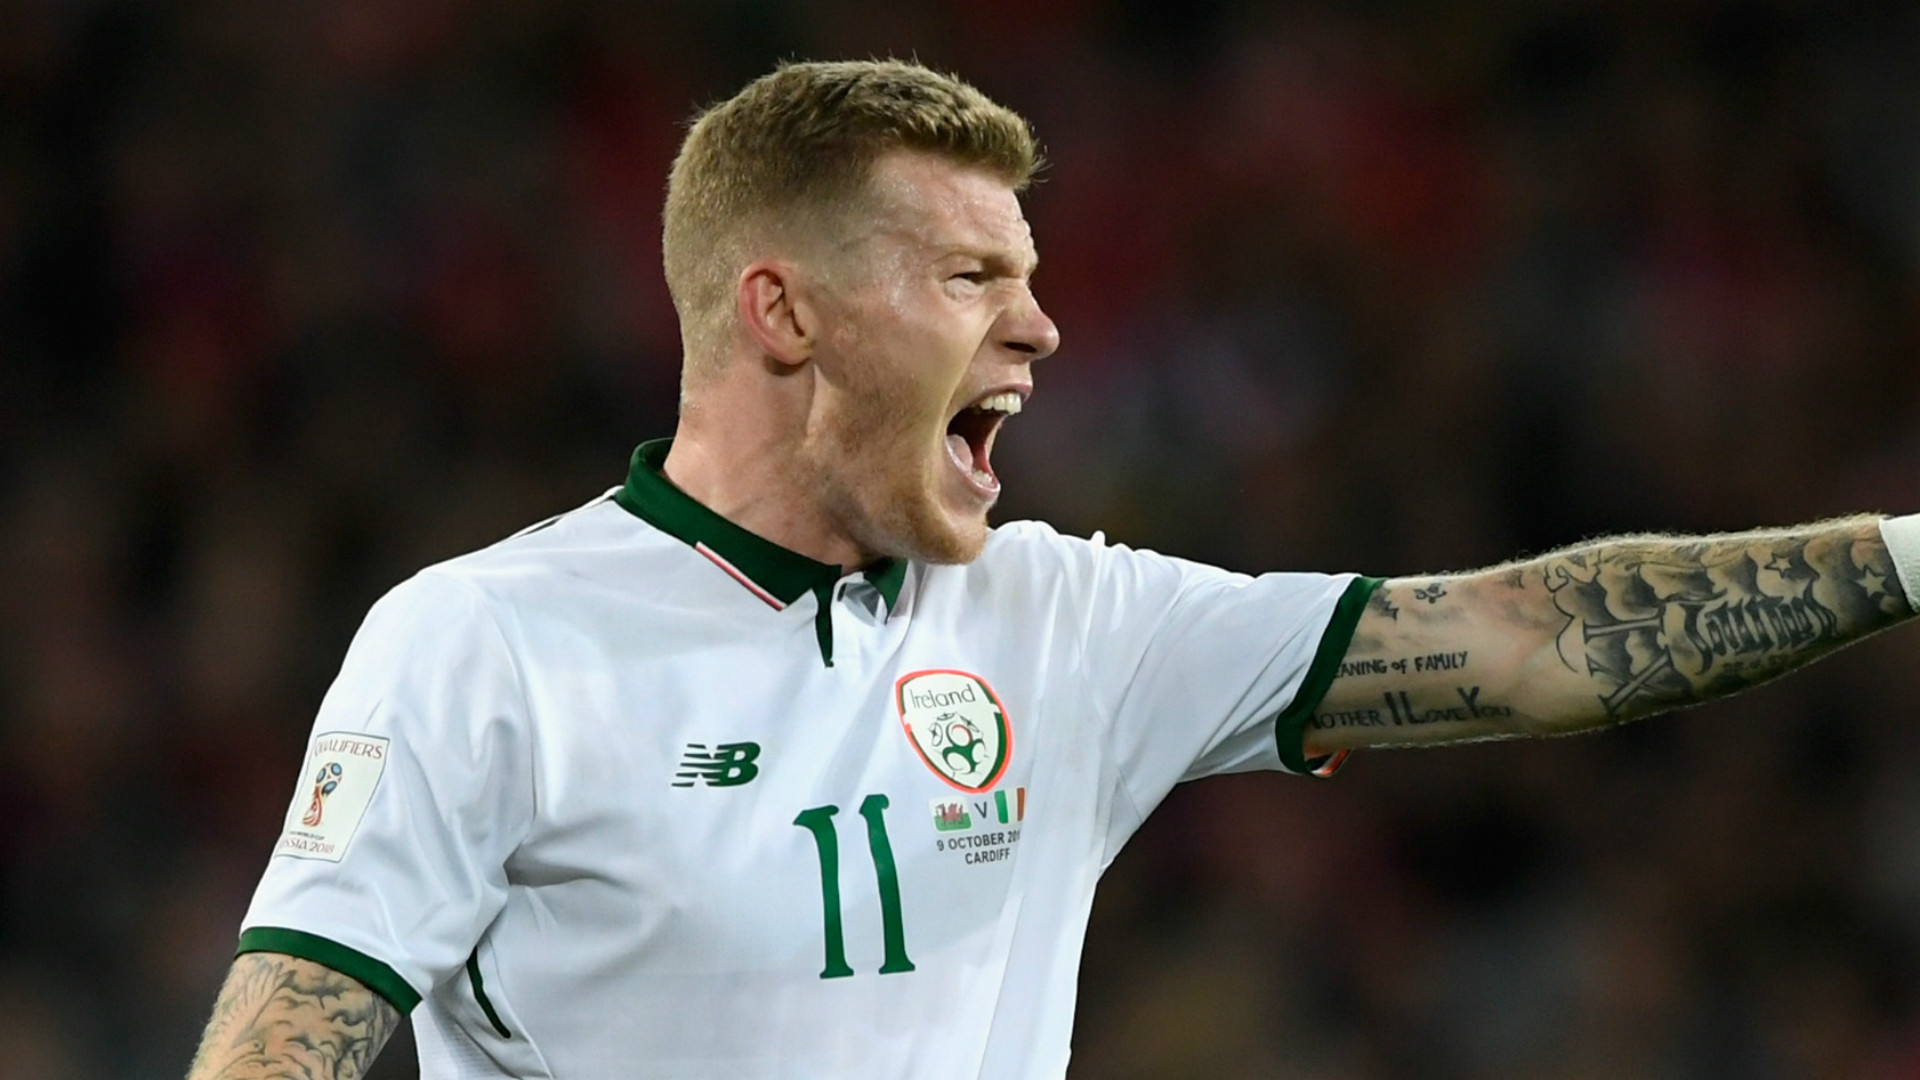 James McClean Republic of Ireland